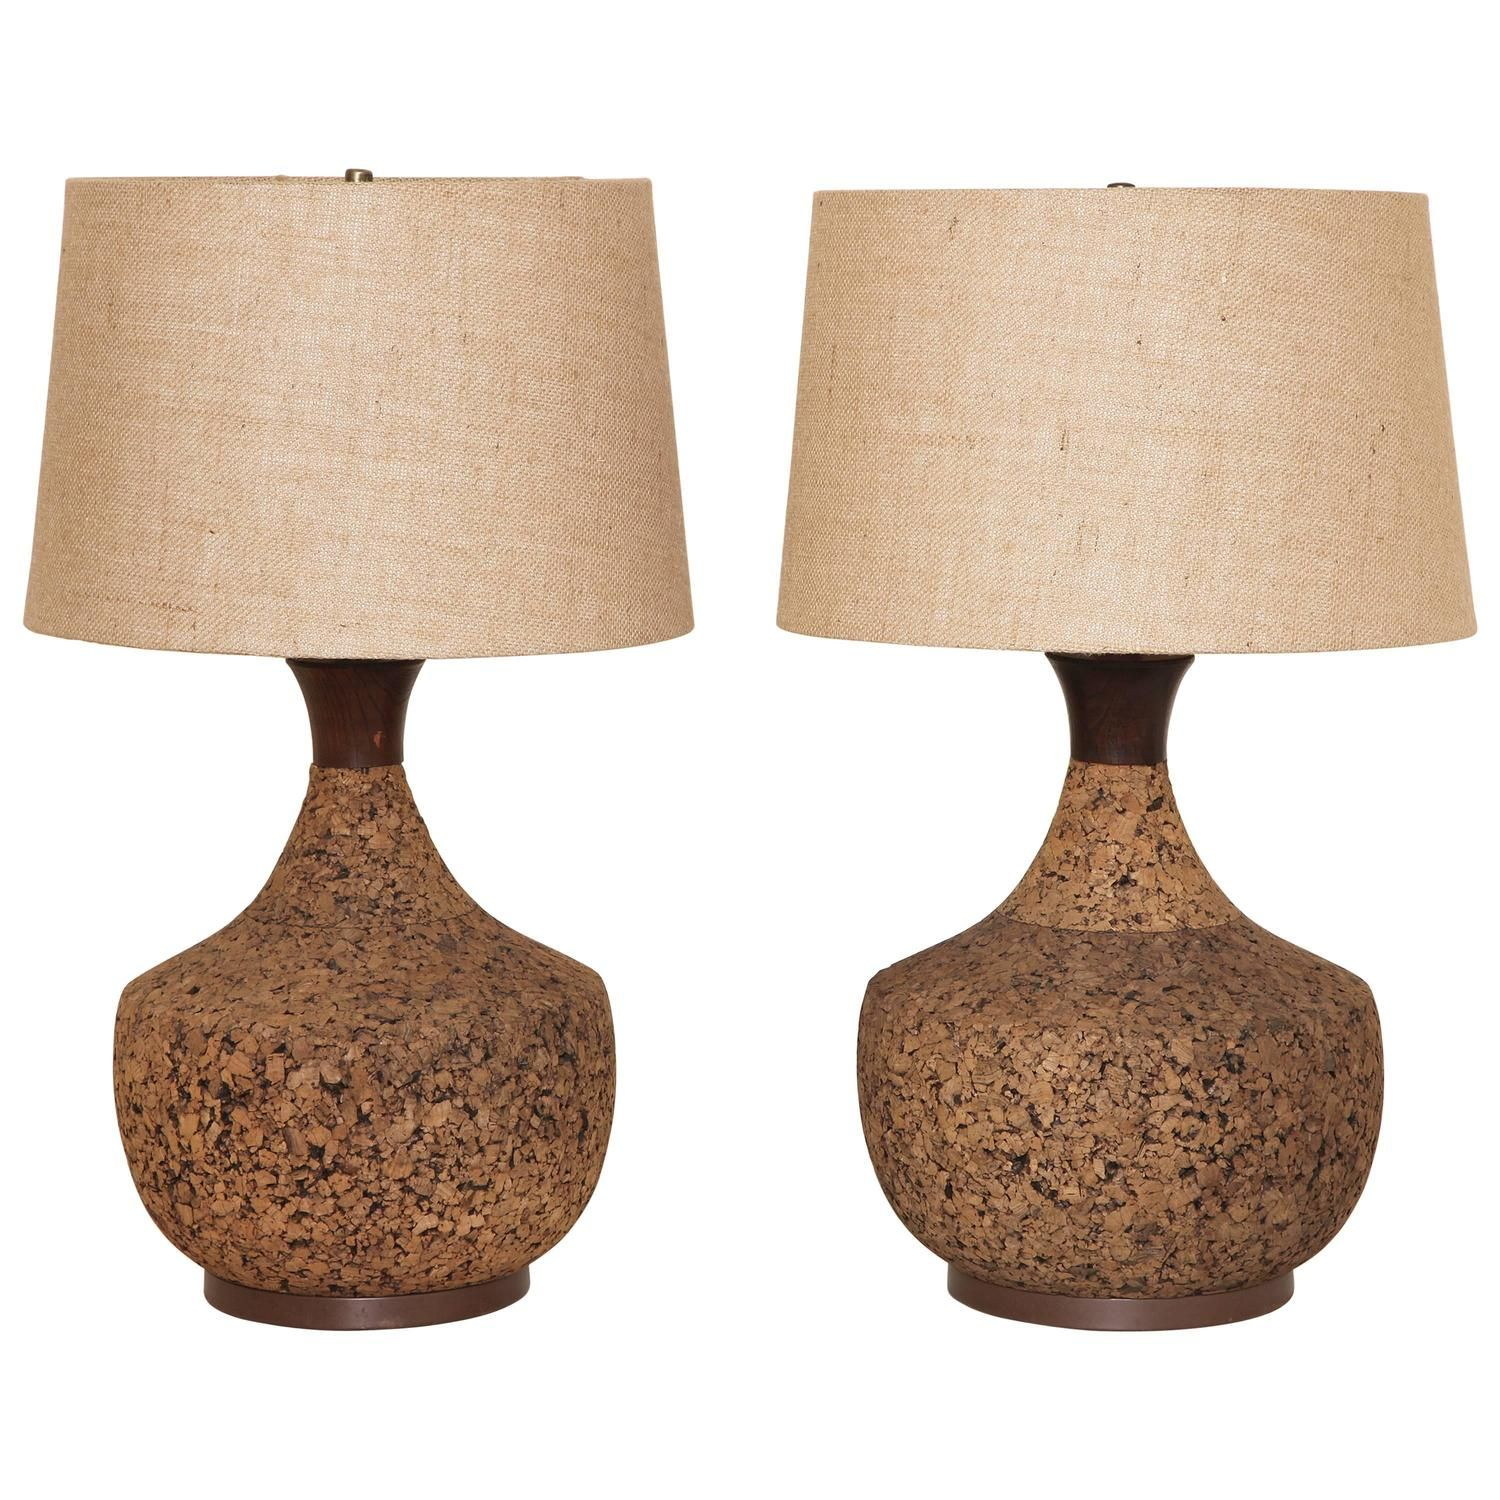 Pair Of Mid Century Modern Cork Lamps With Original Linen Shades